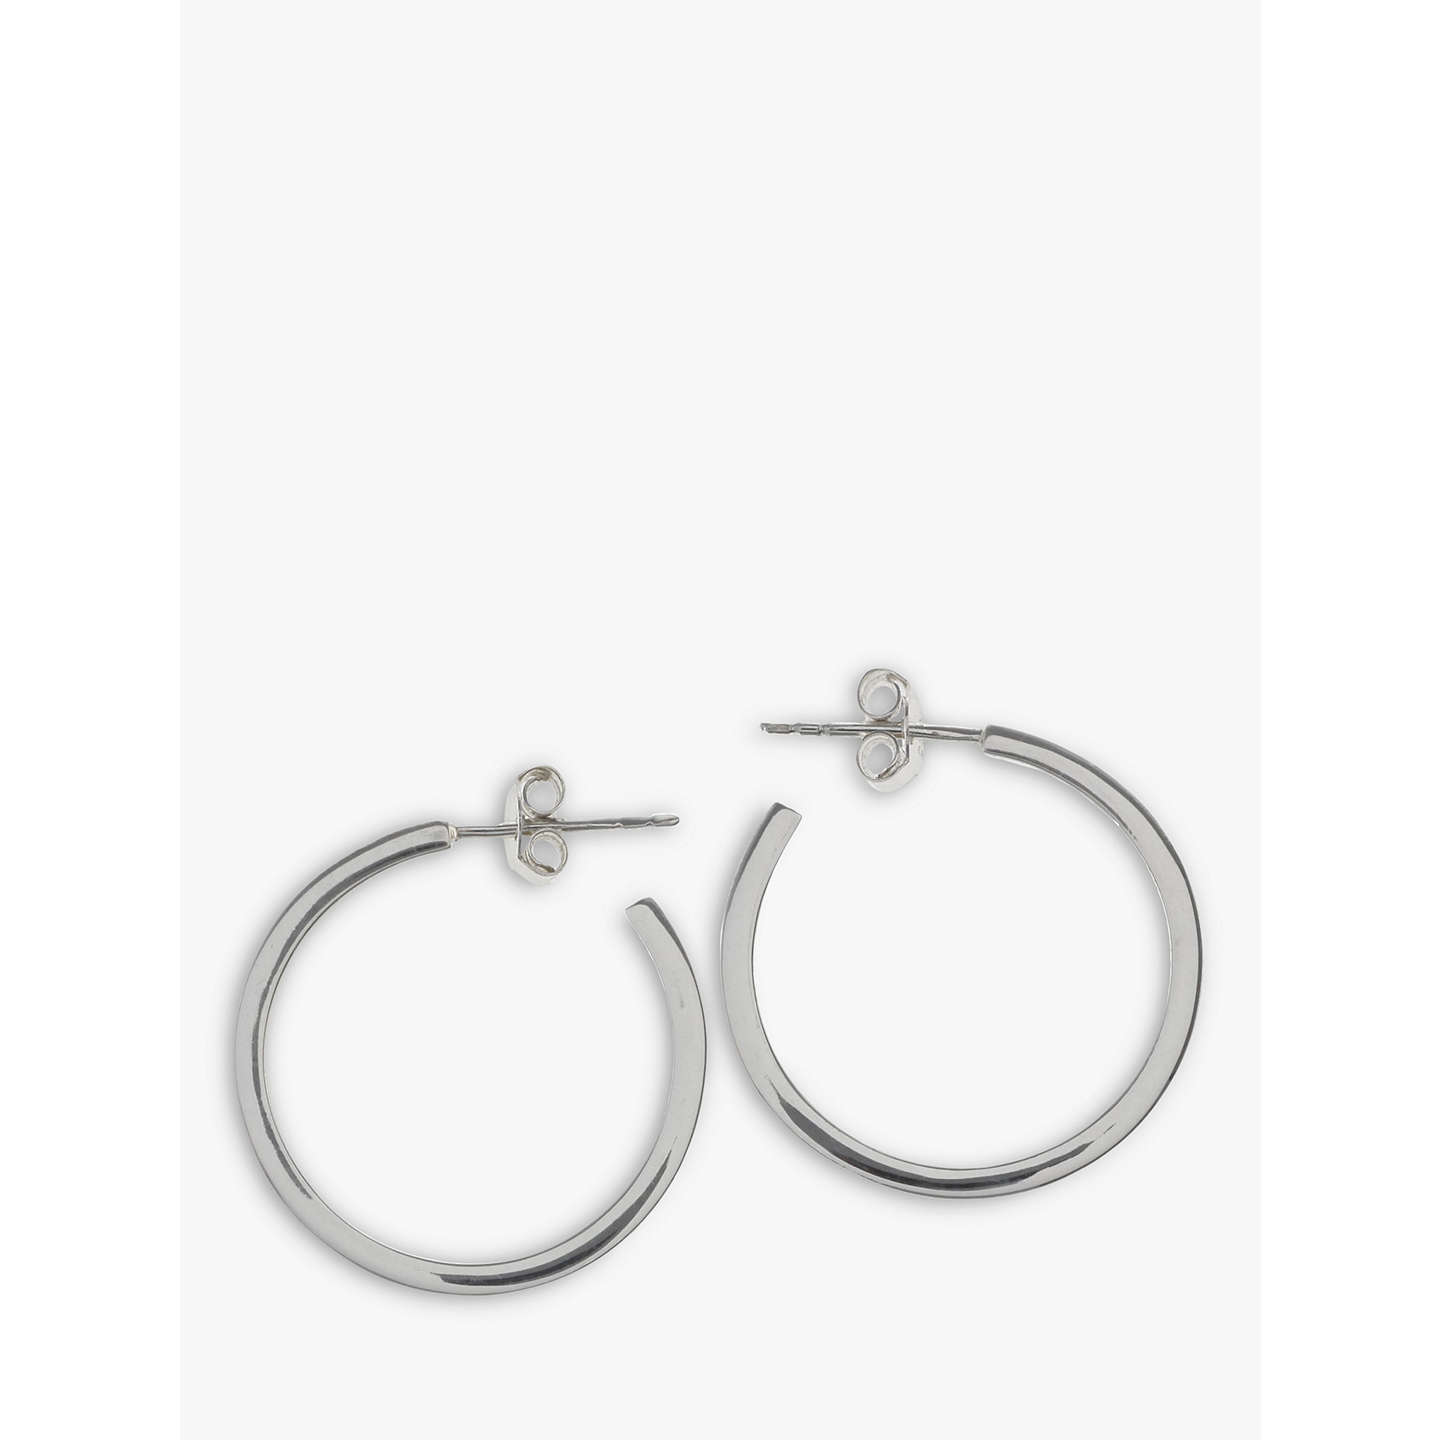 Nina B Sterling Silver Medium Square Hoop Earrings Online At Johnlewis